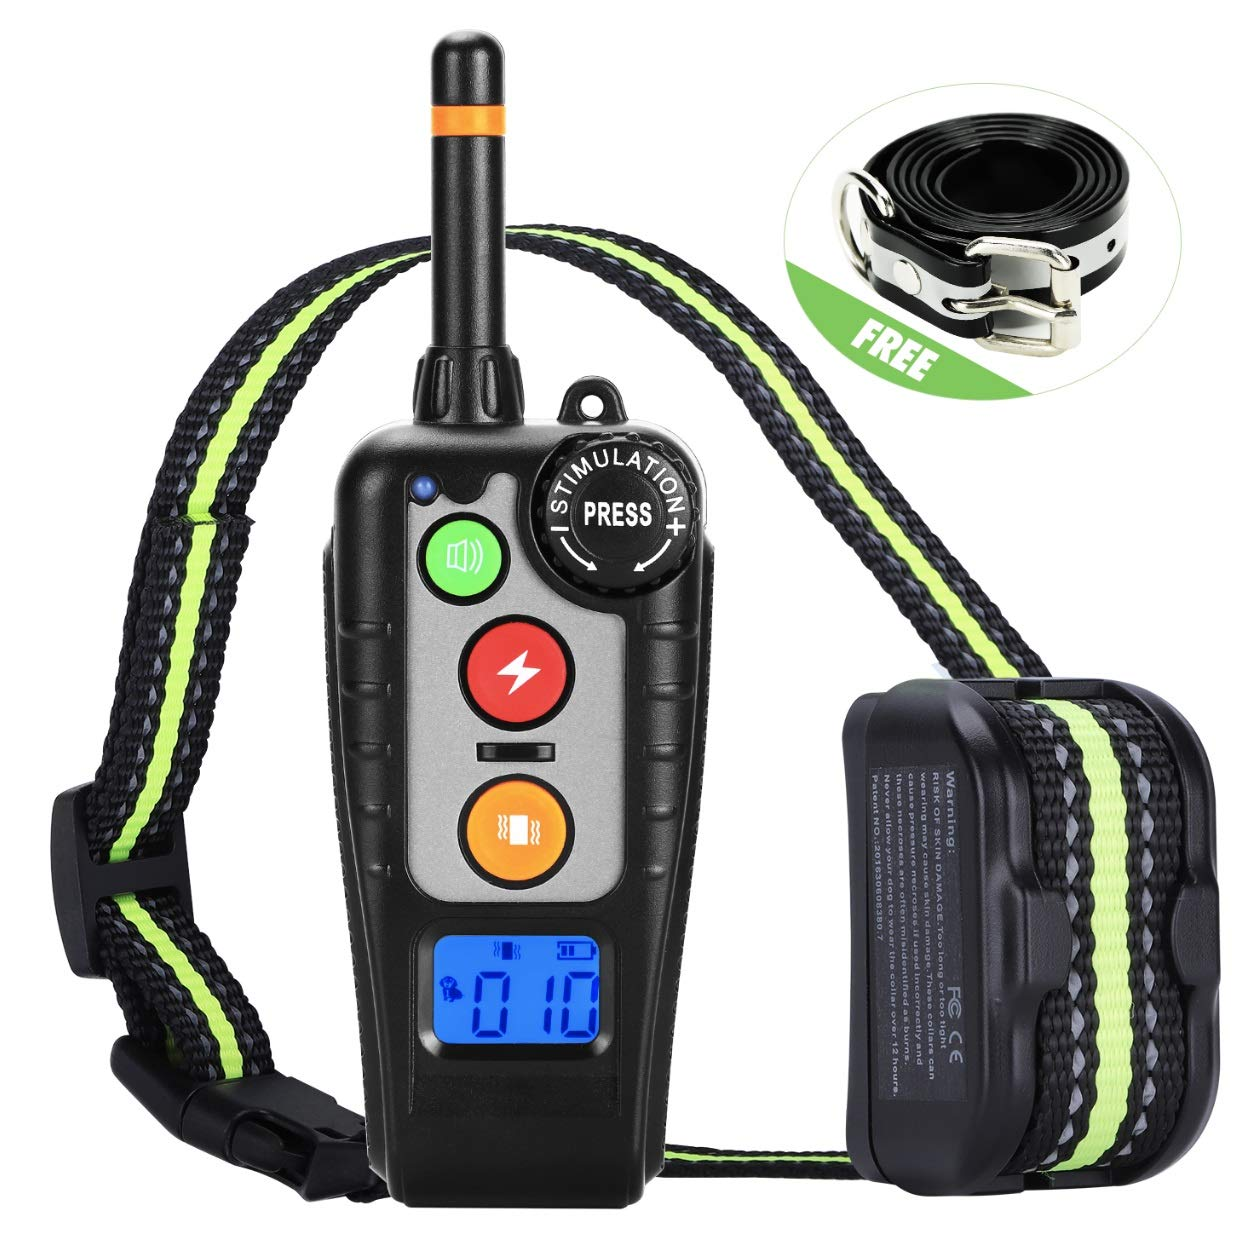 Dog Training Collar,Rechargeable Shock Collar and E-Collars up to 2000FT Remote,3 Color 3 Training Modes Beep/Vibration/Shock,Rotary Dial adjust Intensity 100% Waterproof Training Collar for all Dogs. by JIALANJIUYU